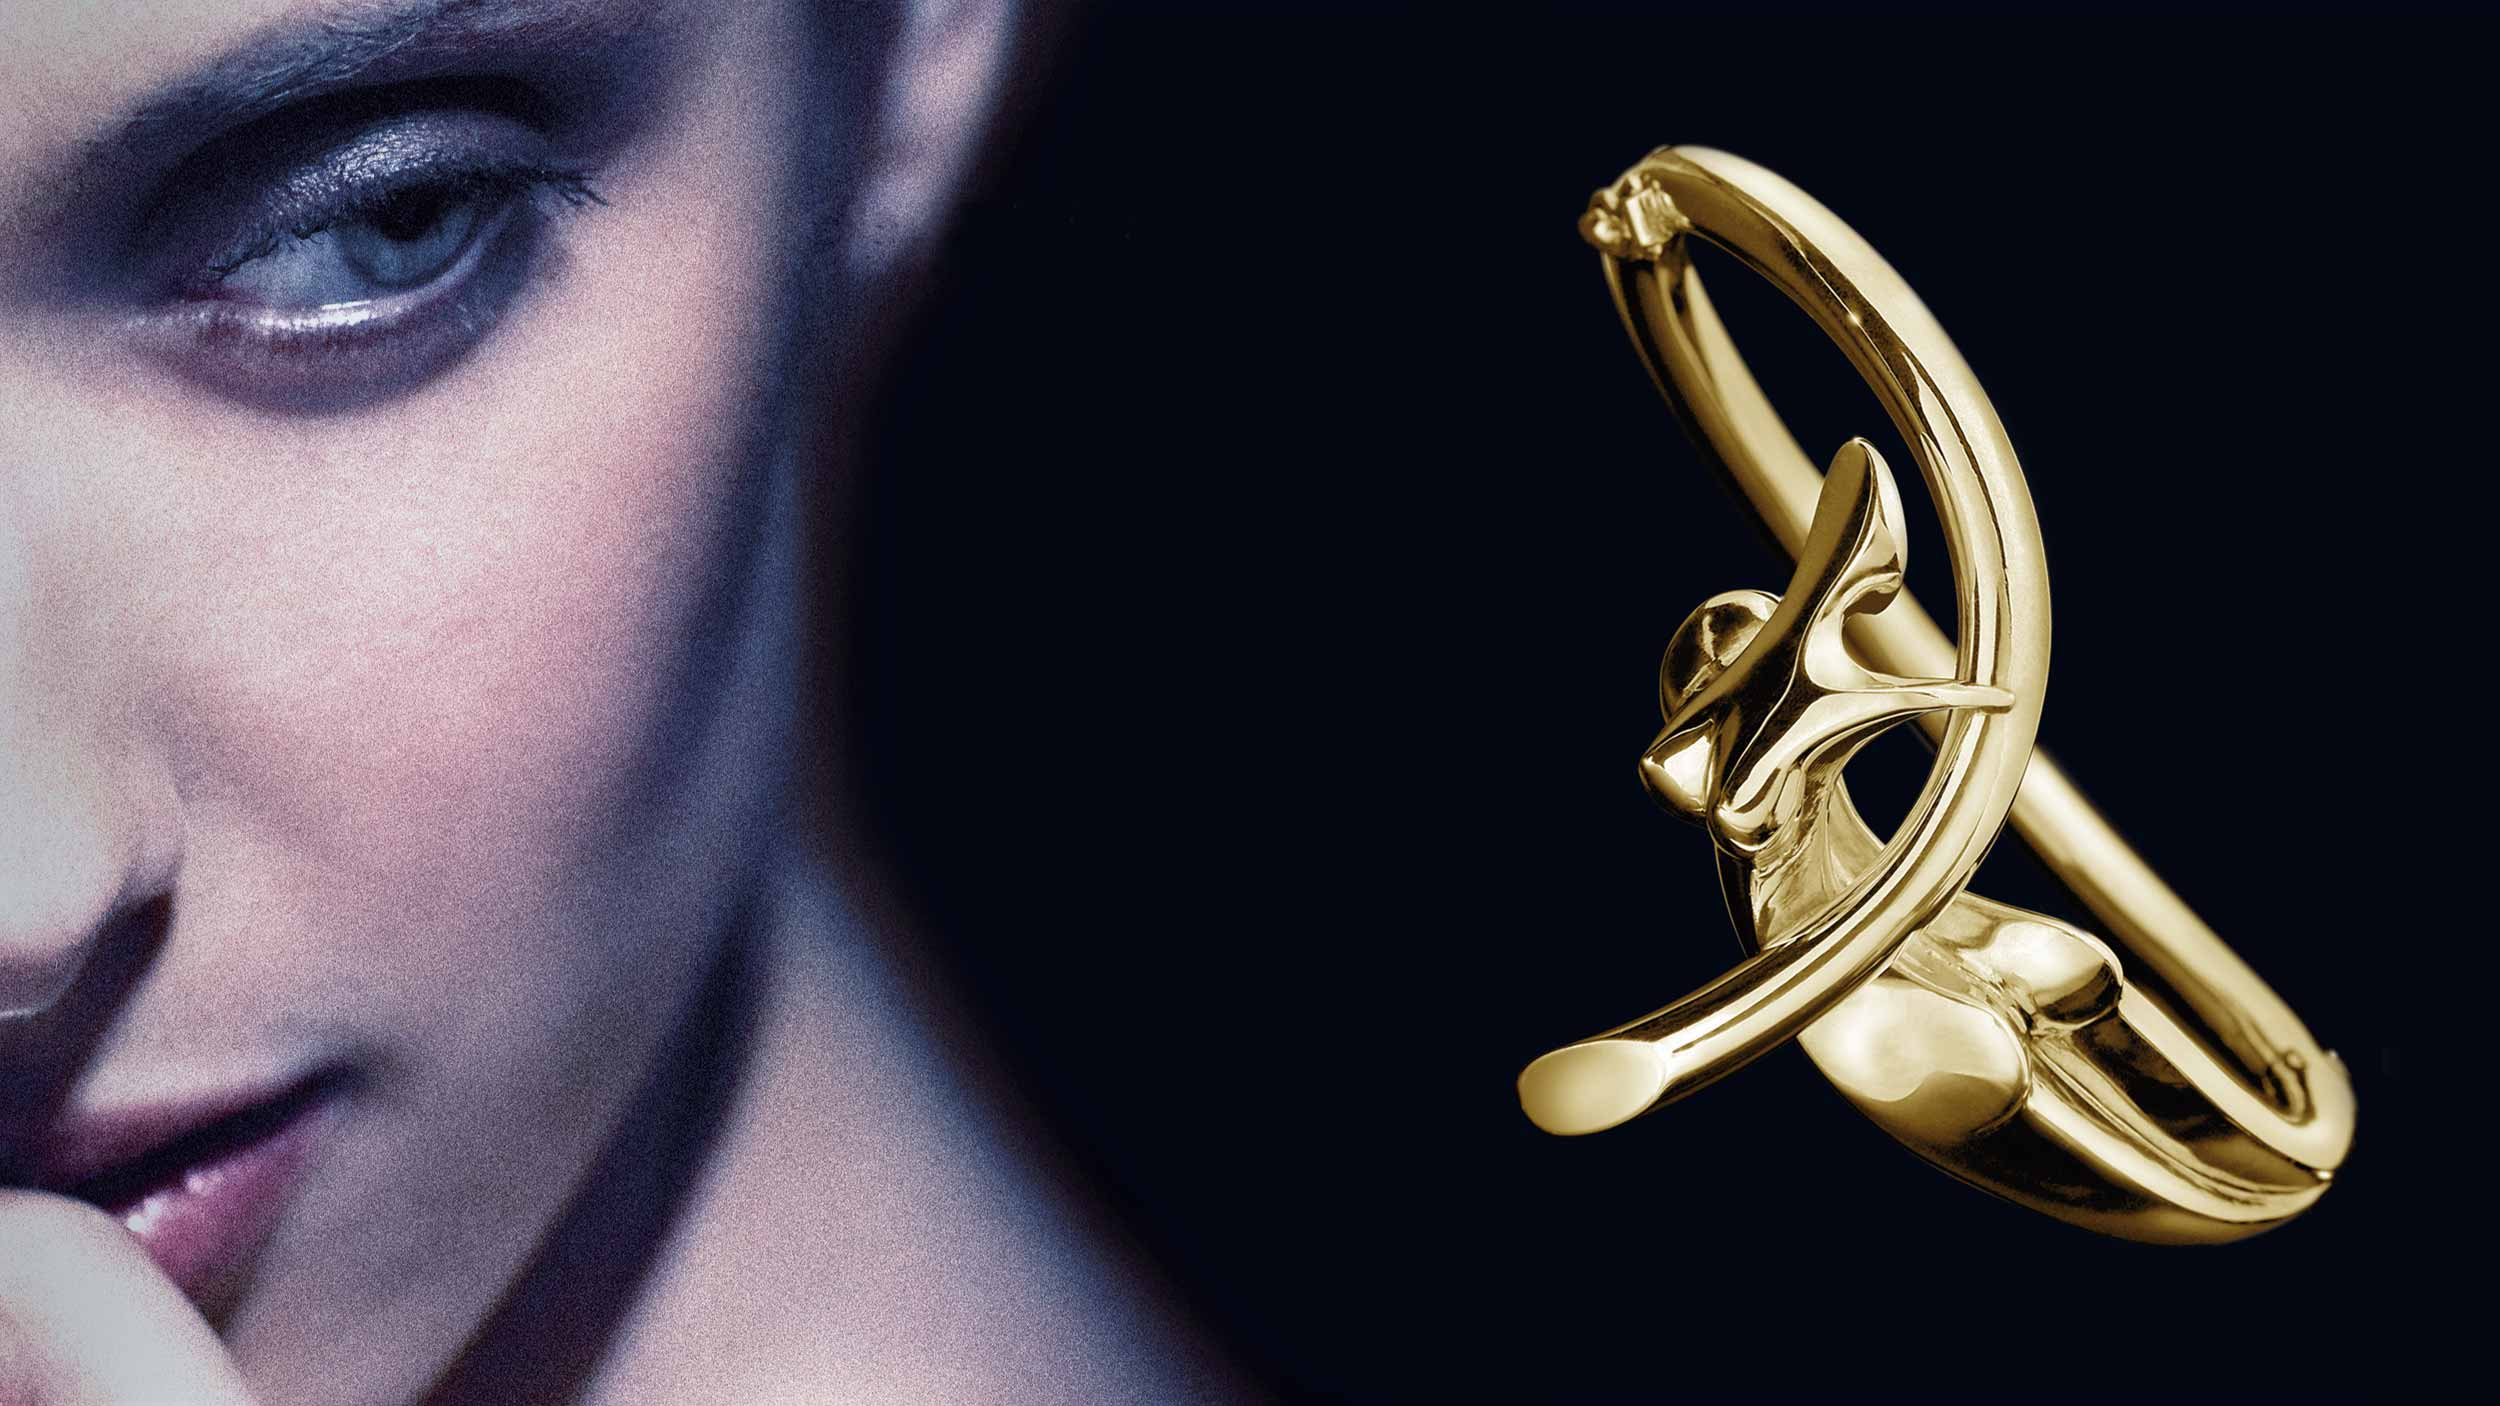 Nina, Bracelet 18 - carat gold, signed by the artist Marion Bürklé